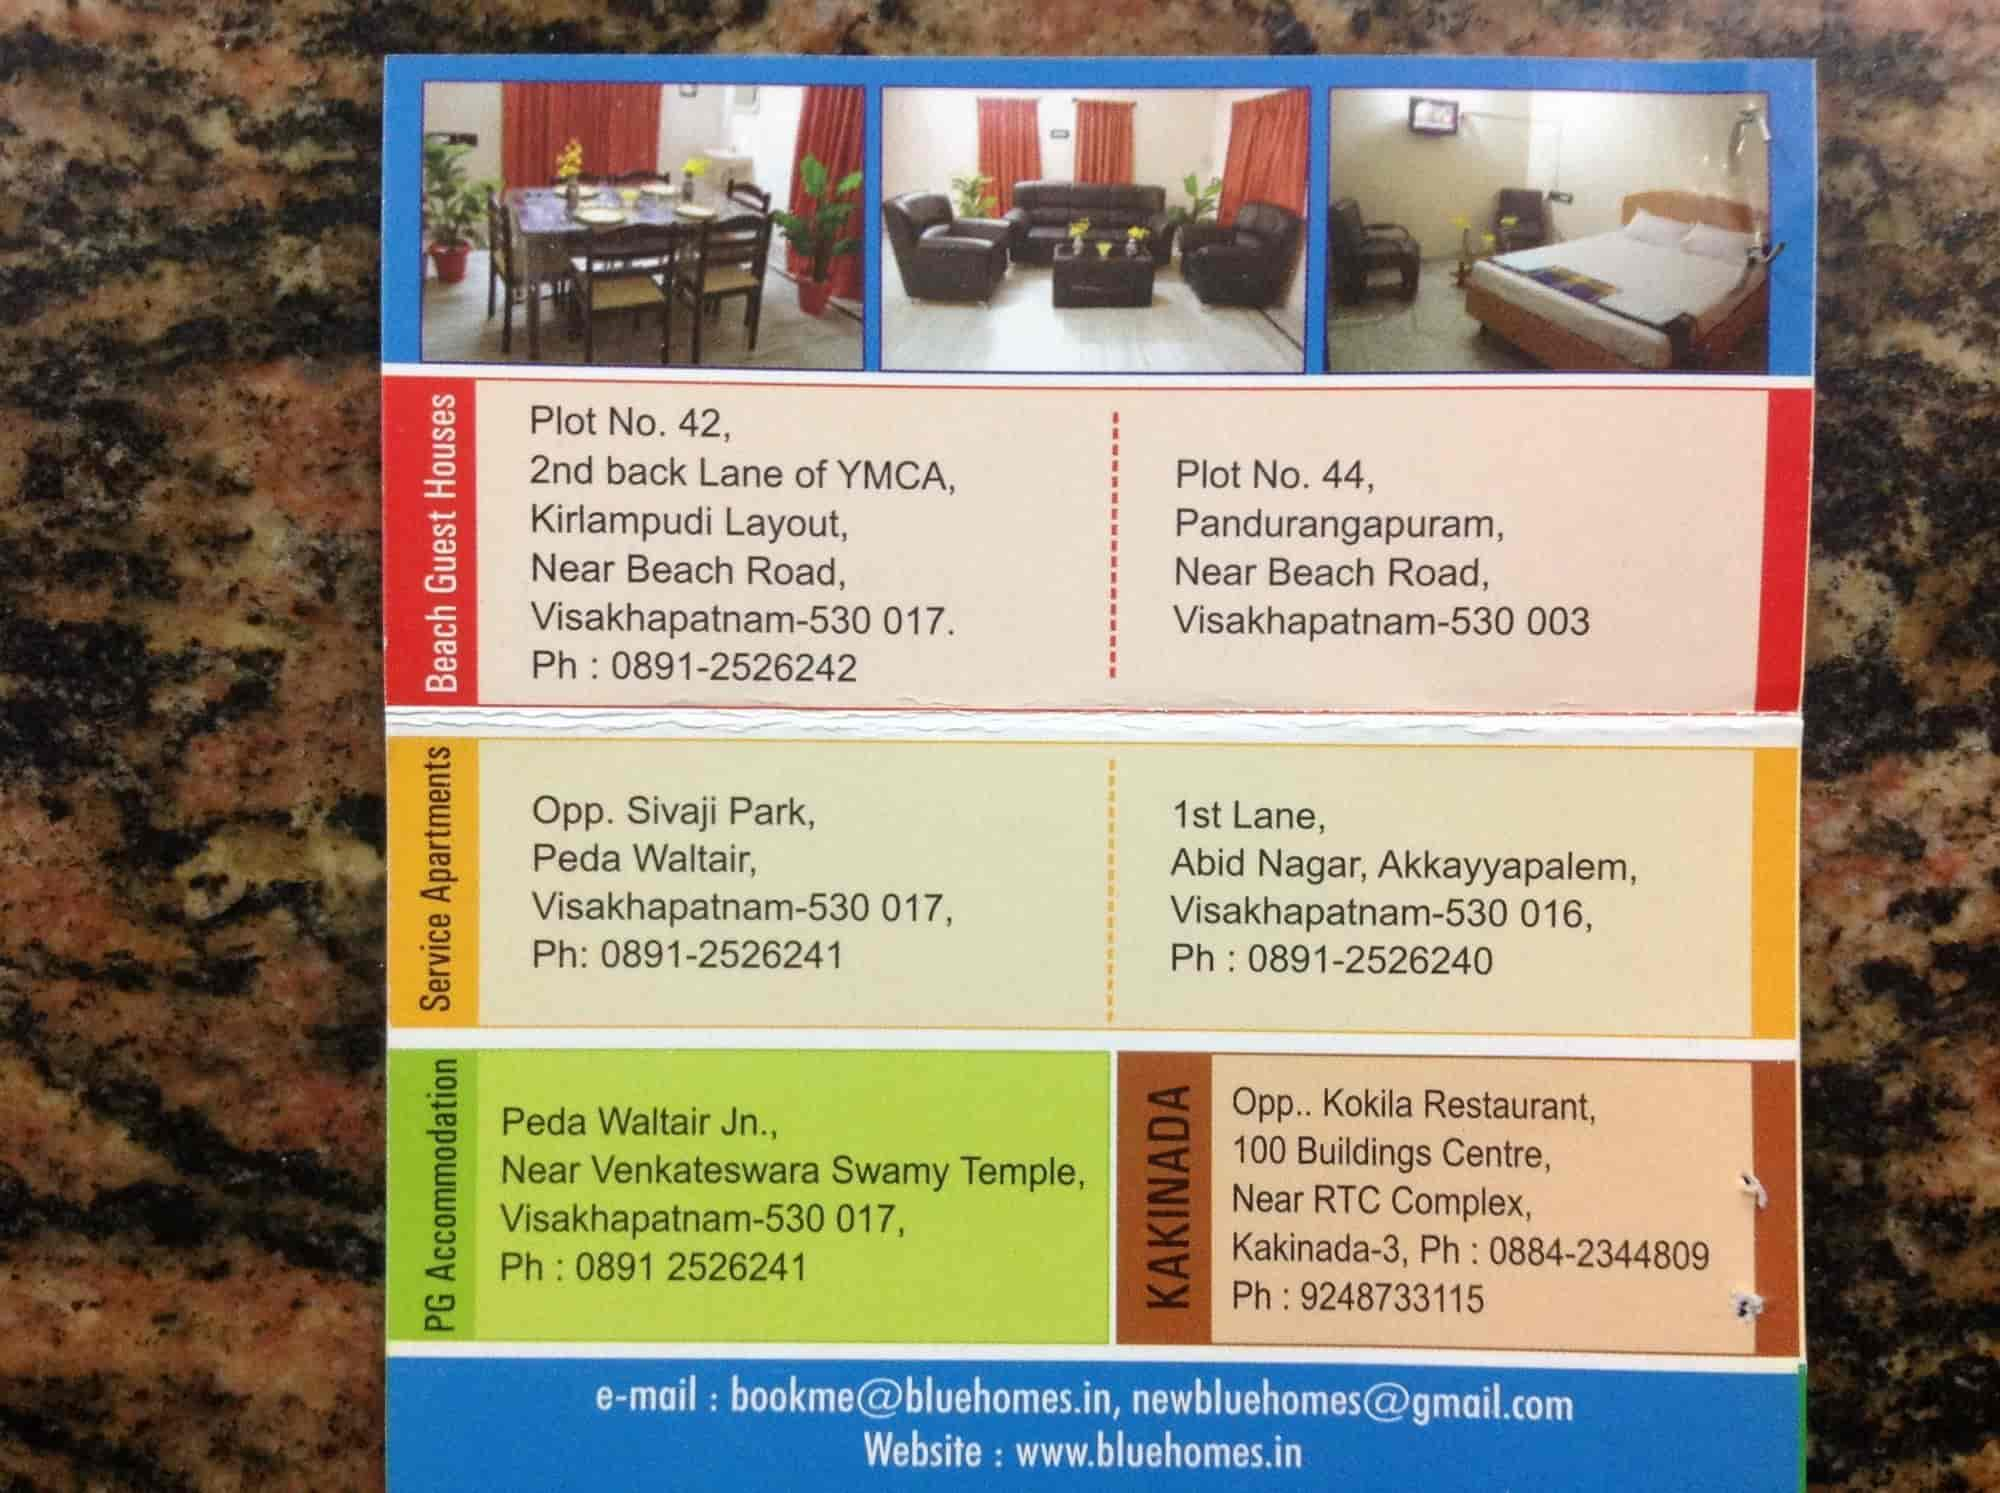 The New Blue Homes, RTC Complex Road - Hotels in Kakinada - Justdial